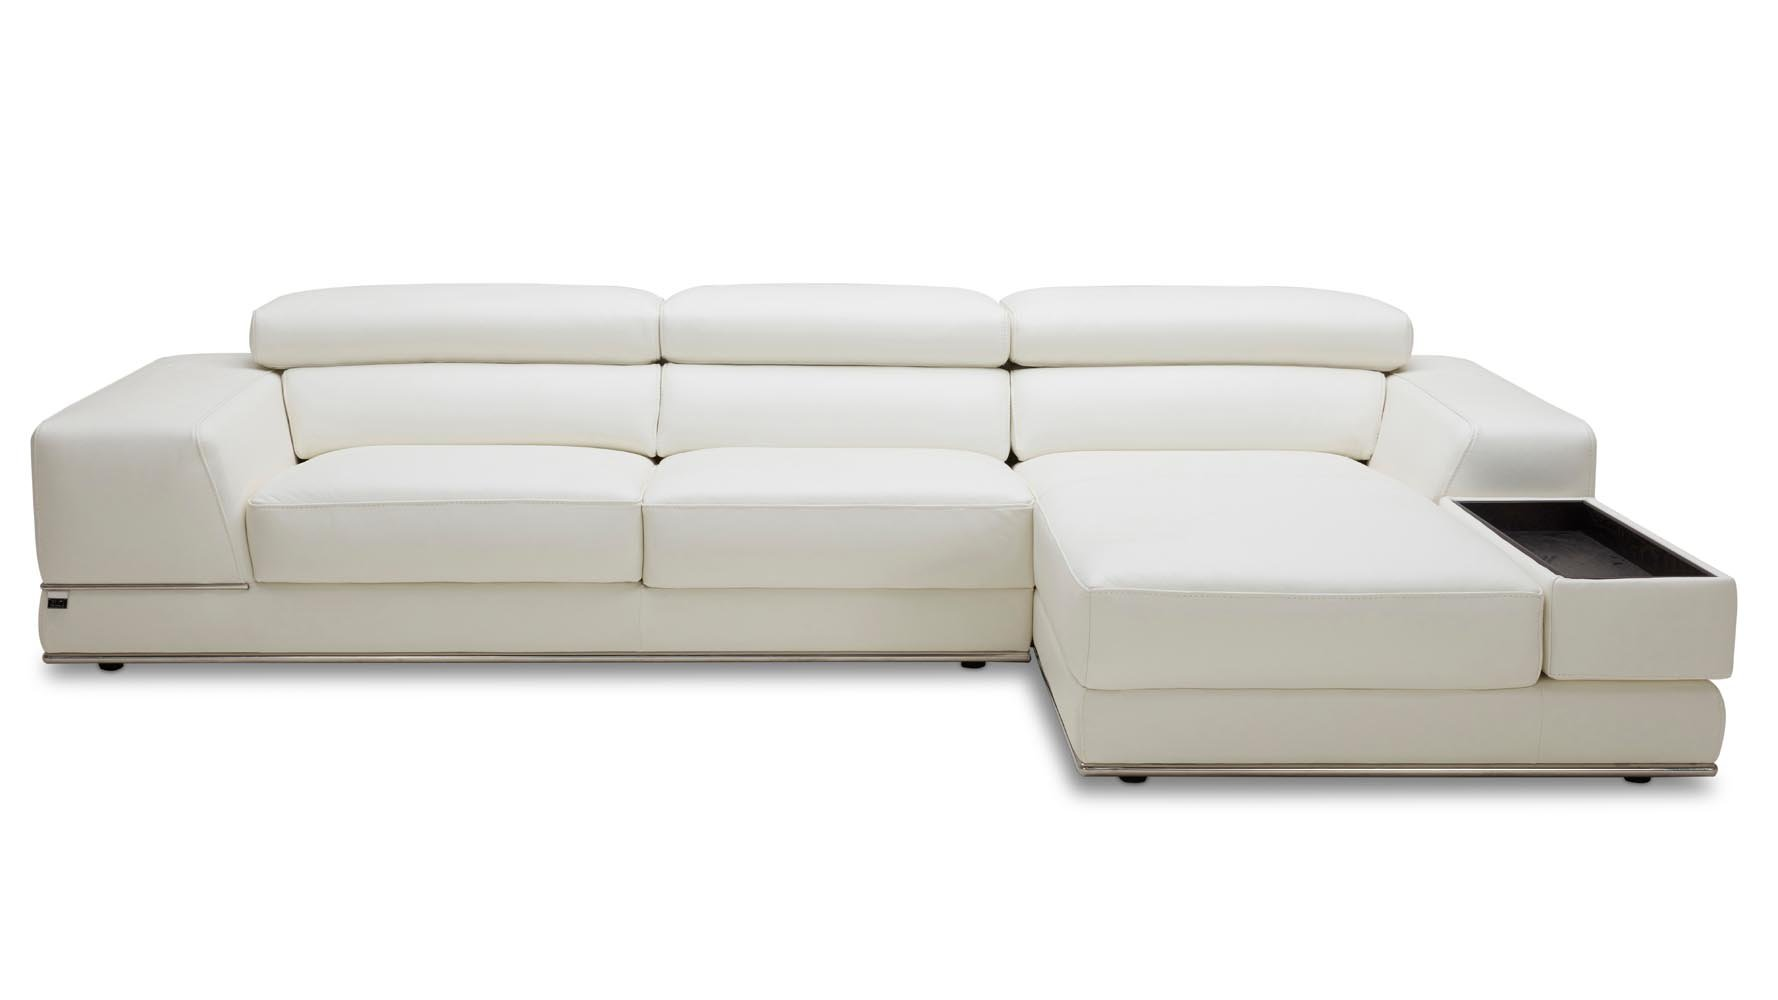 white leather chaise lounge encore white leather sectional sofa zuri furniture 21985 | encore white leather sofa right chaise 1